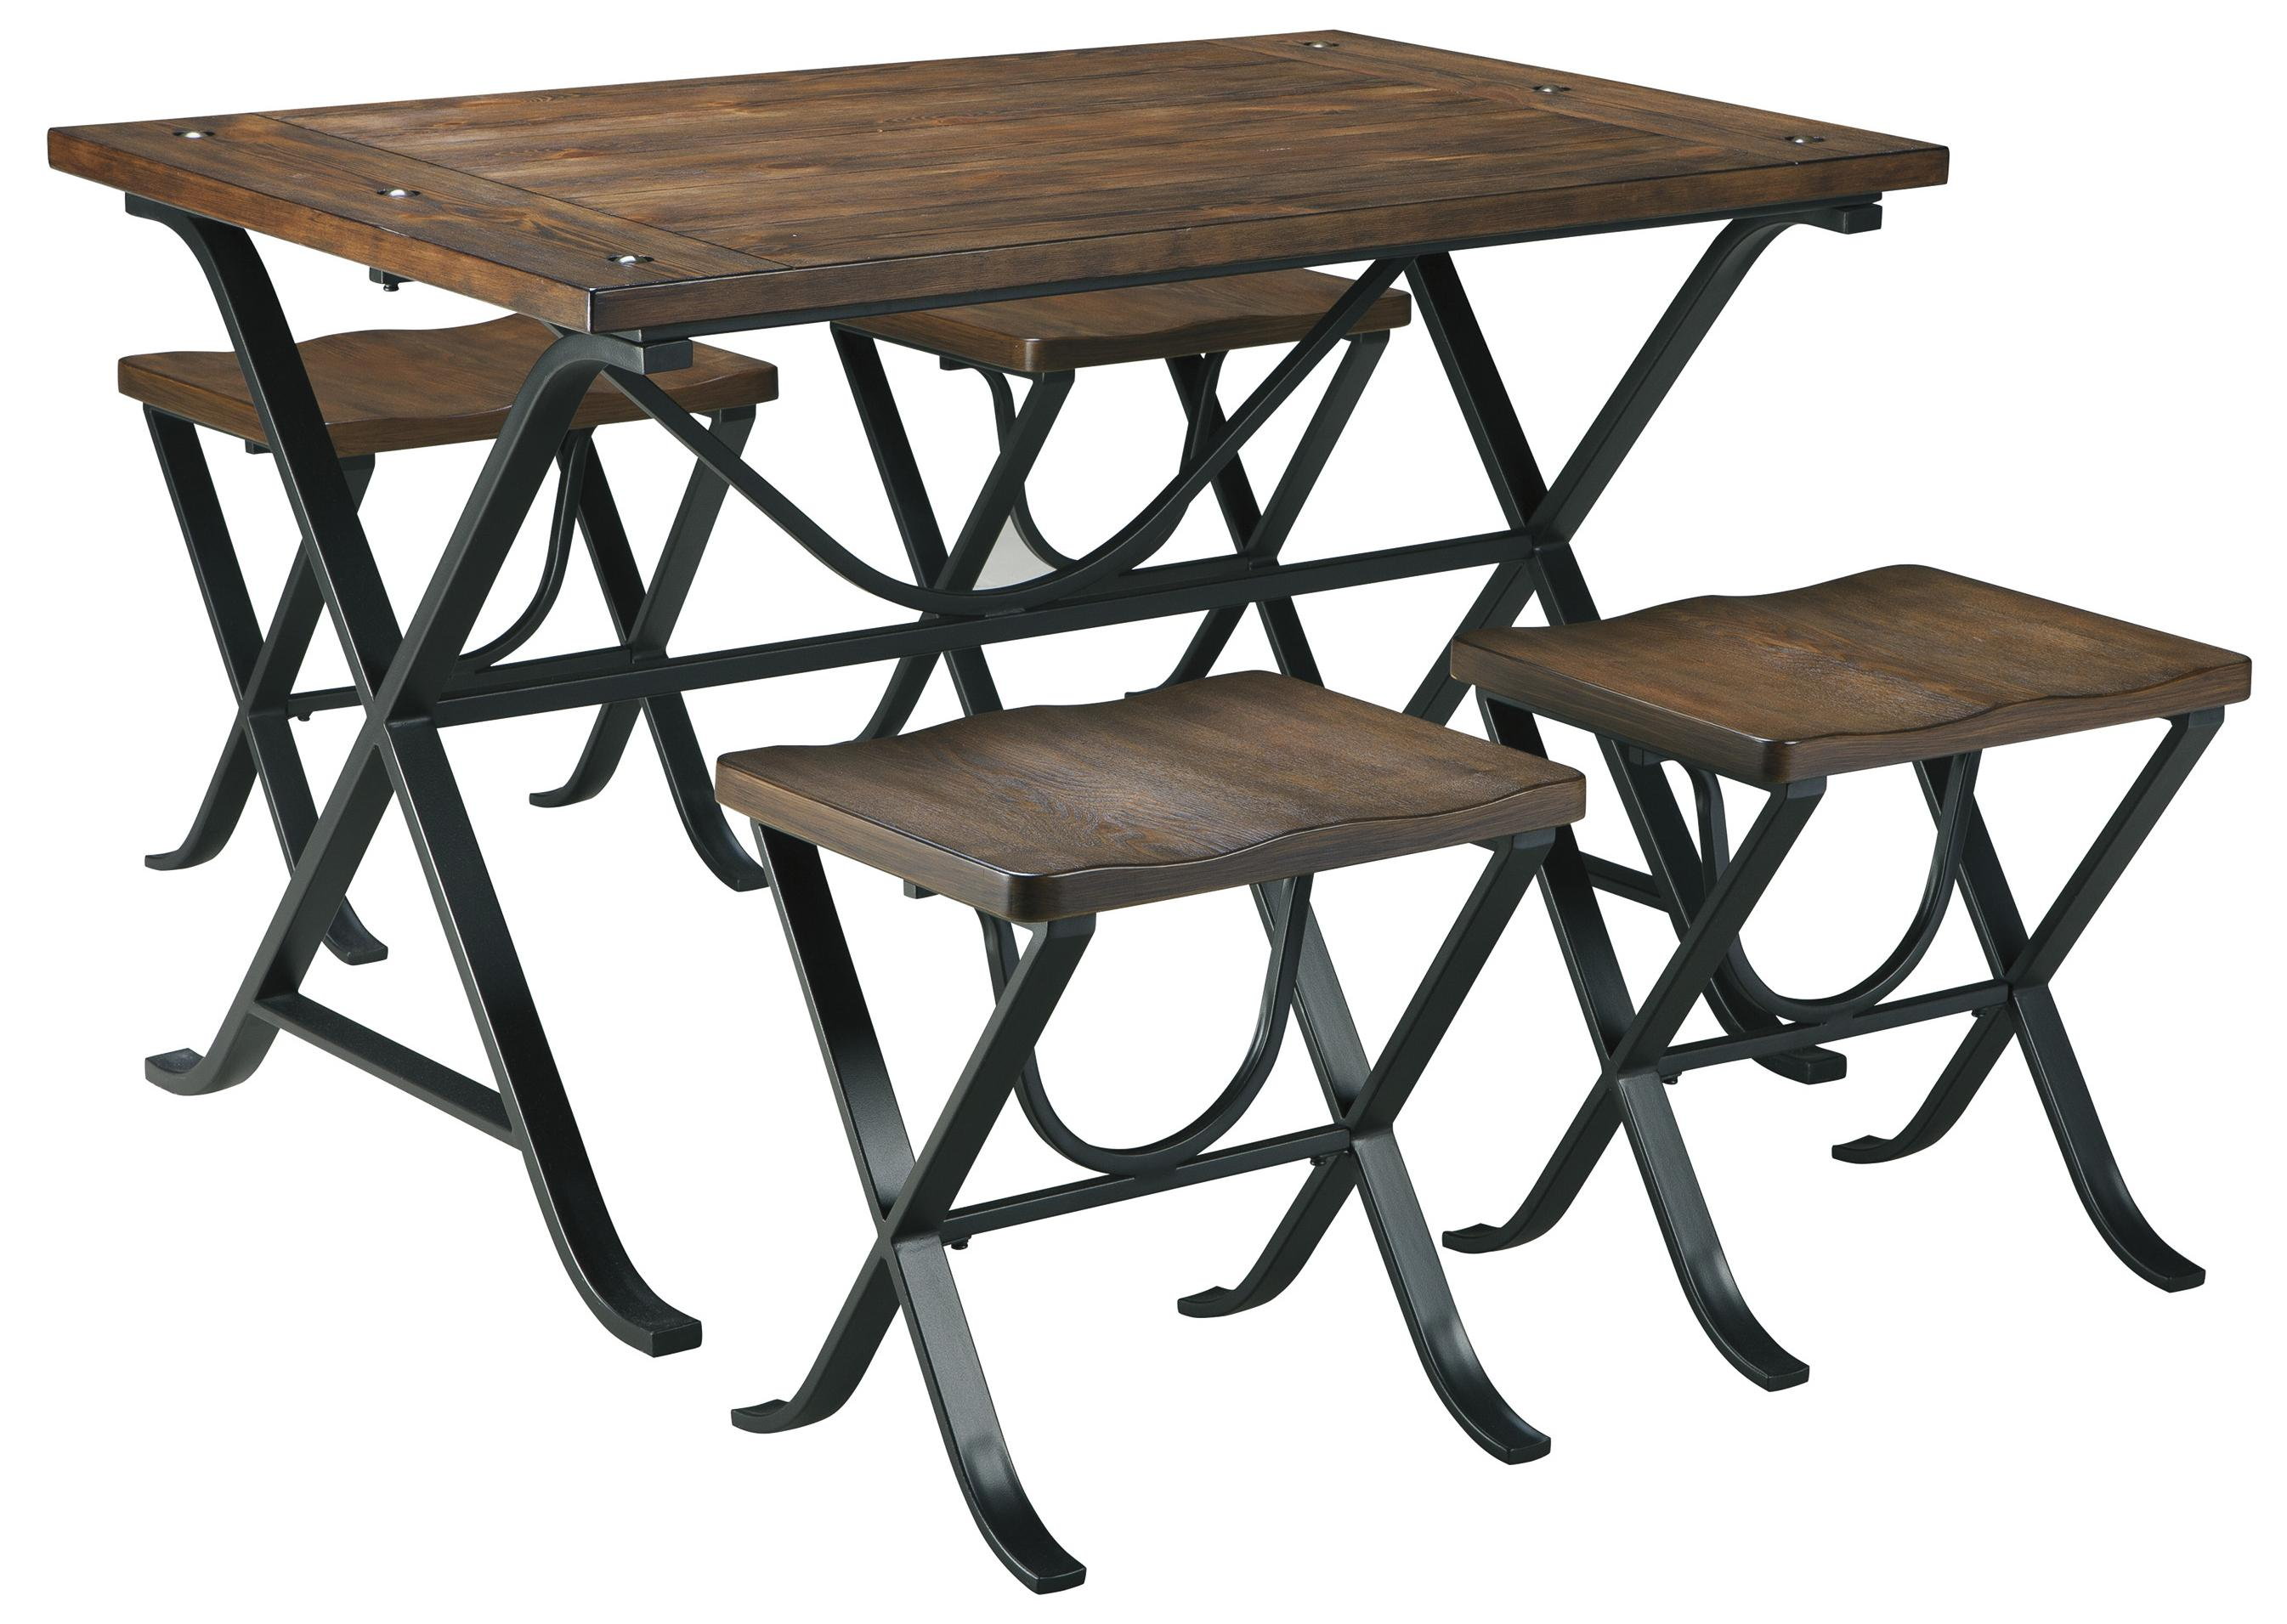 Freimore Rectangular Dining Room Table Set by Signature Design by Ashley at Northeast Factory Direct